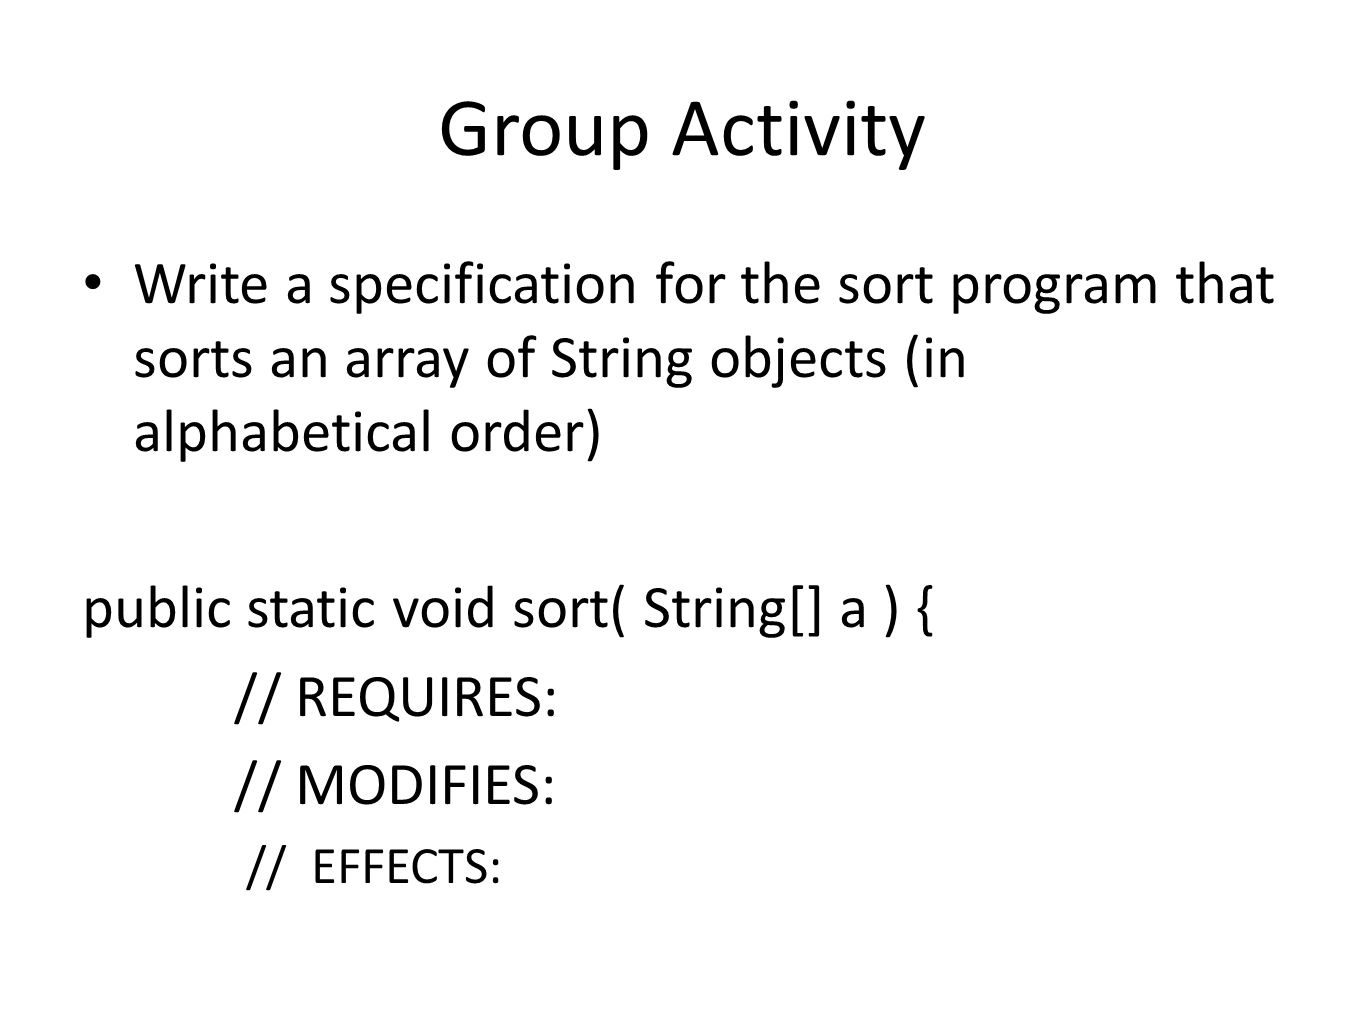 Group Activity Write a specification for the sort program that sorts an array of String objects (in alphabetical order) public static void sort( Strin